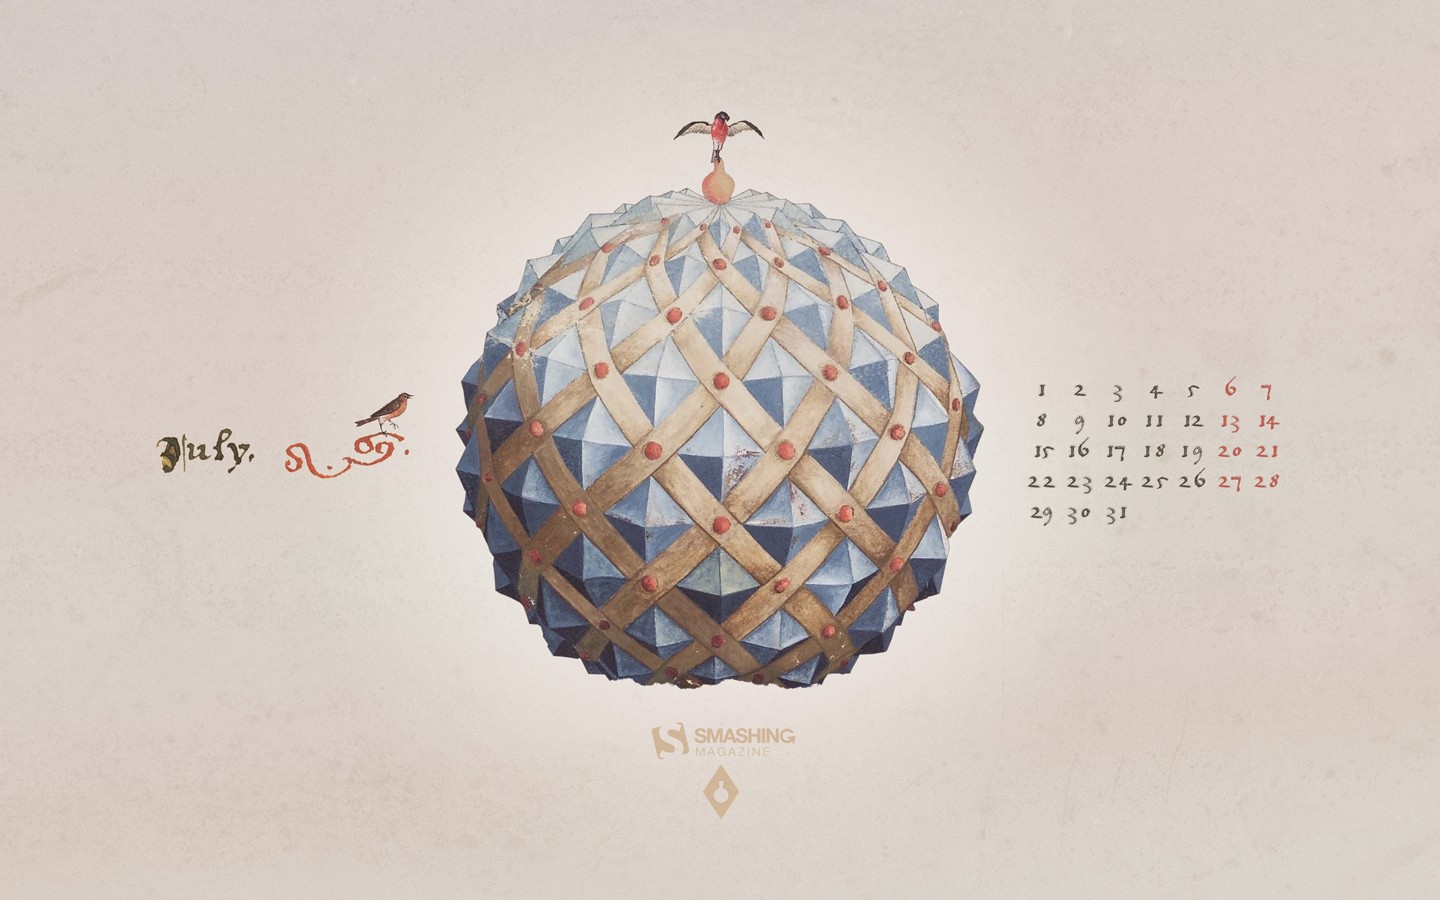 Year Calendar Wallpapers 45161